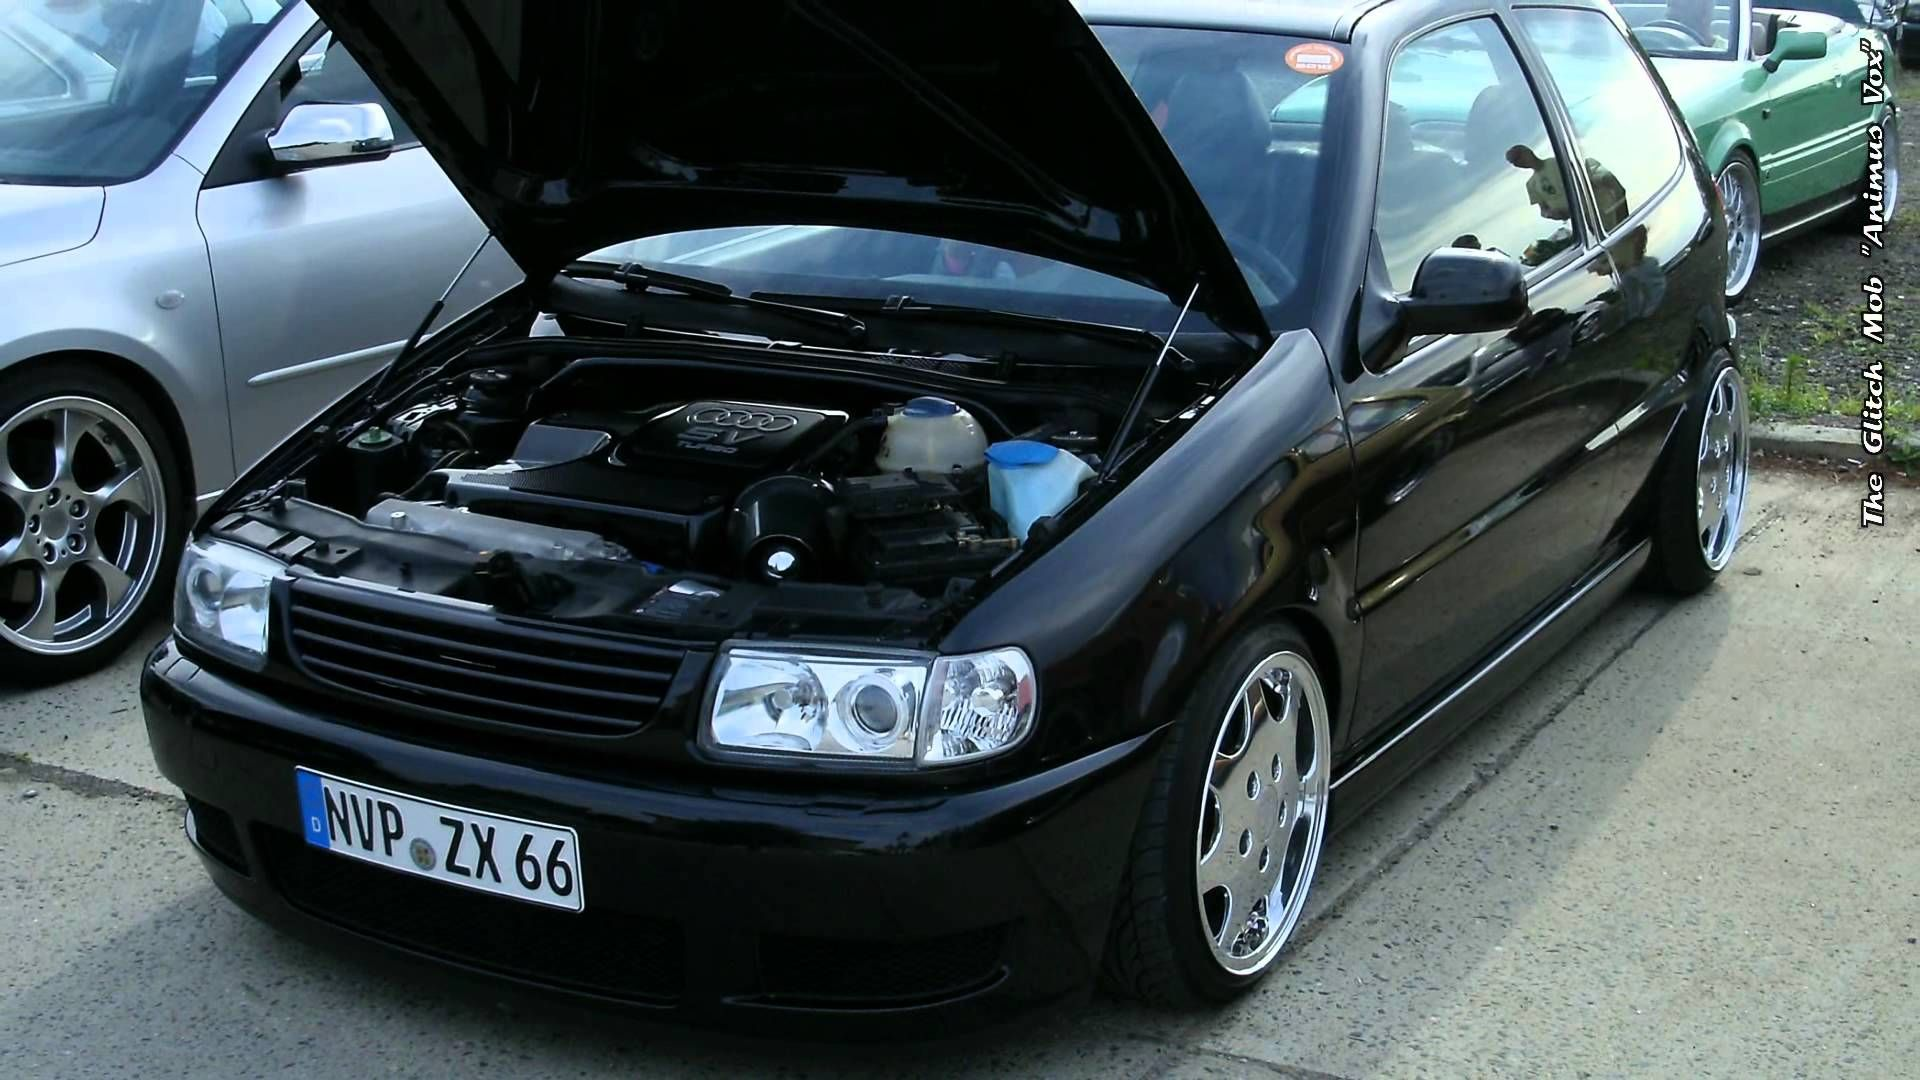 Best 25 vw polo 6n ideas on pinterest vw polo 6n tuning vw polo tuning and polo 6 gti